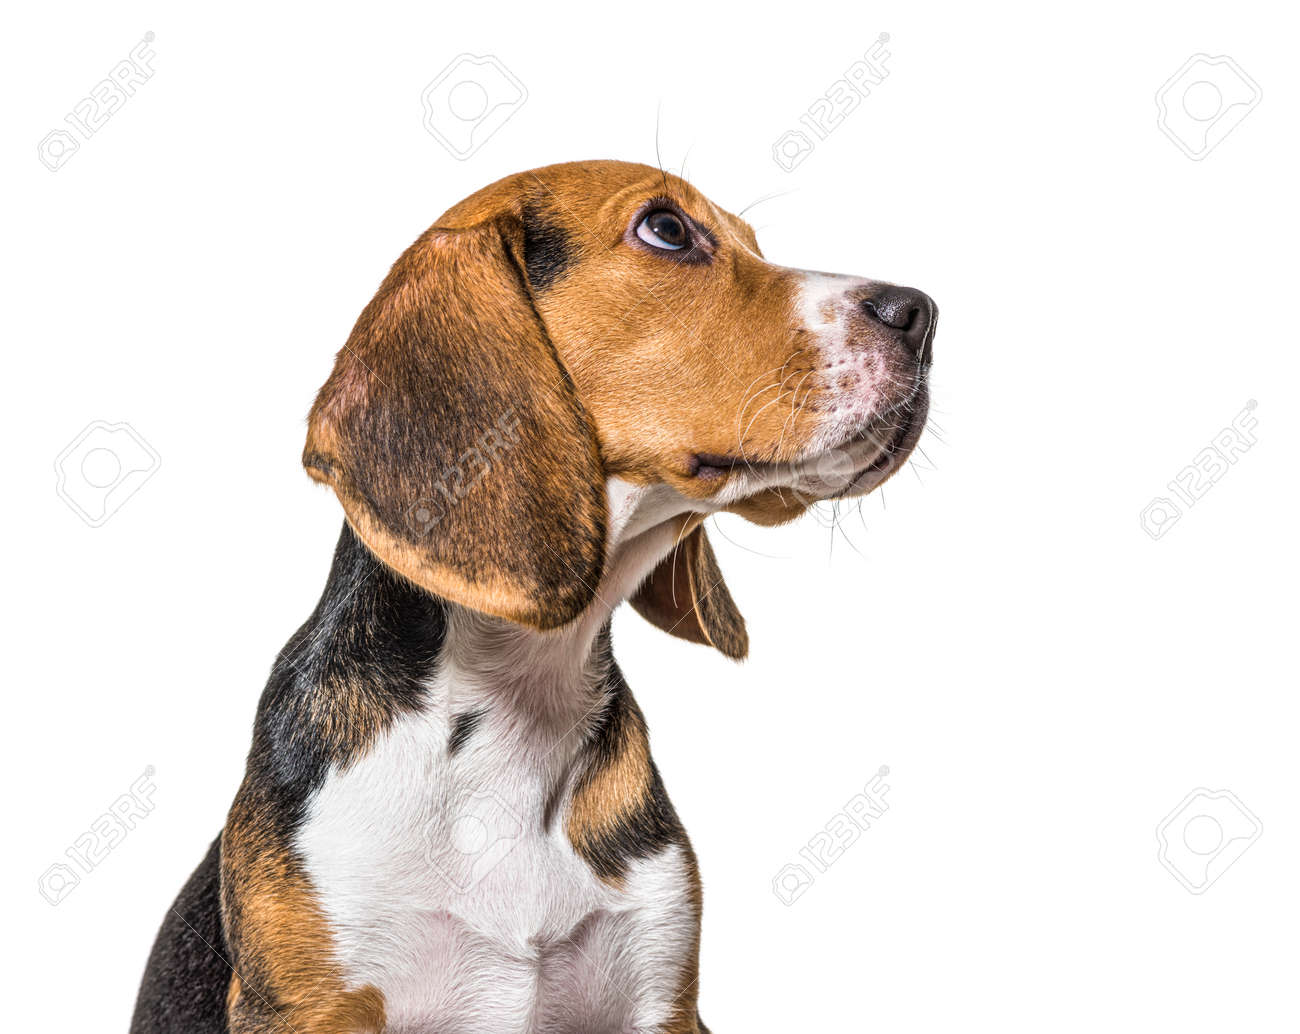 Head shot profile of a Young puppy Beagles dog, isolated - 171049287